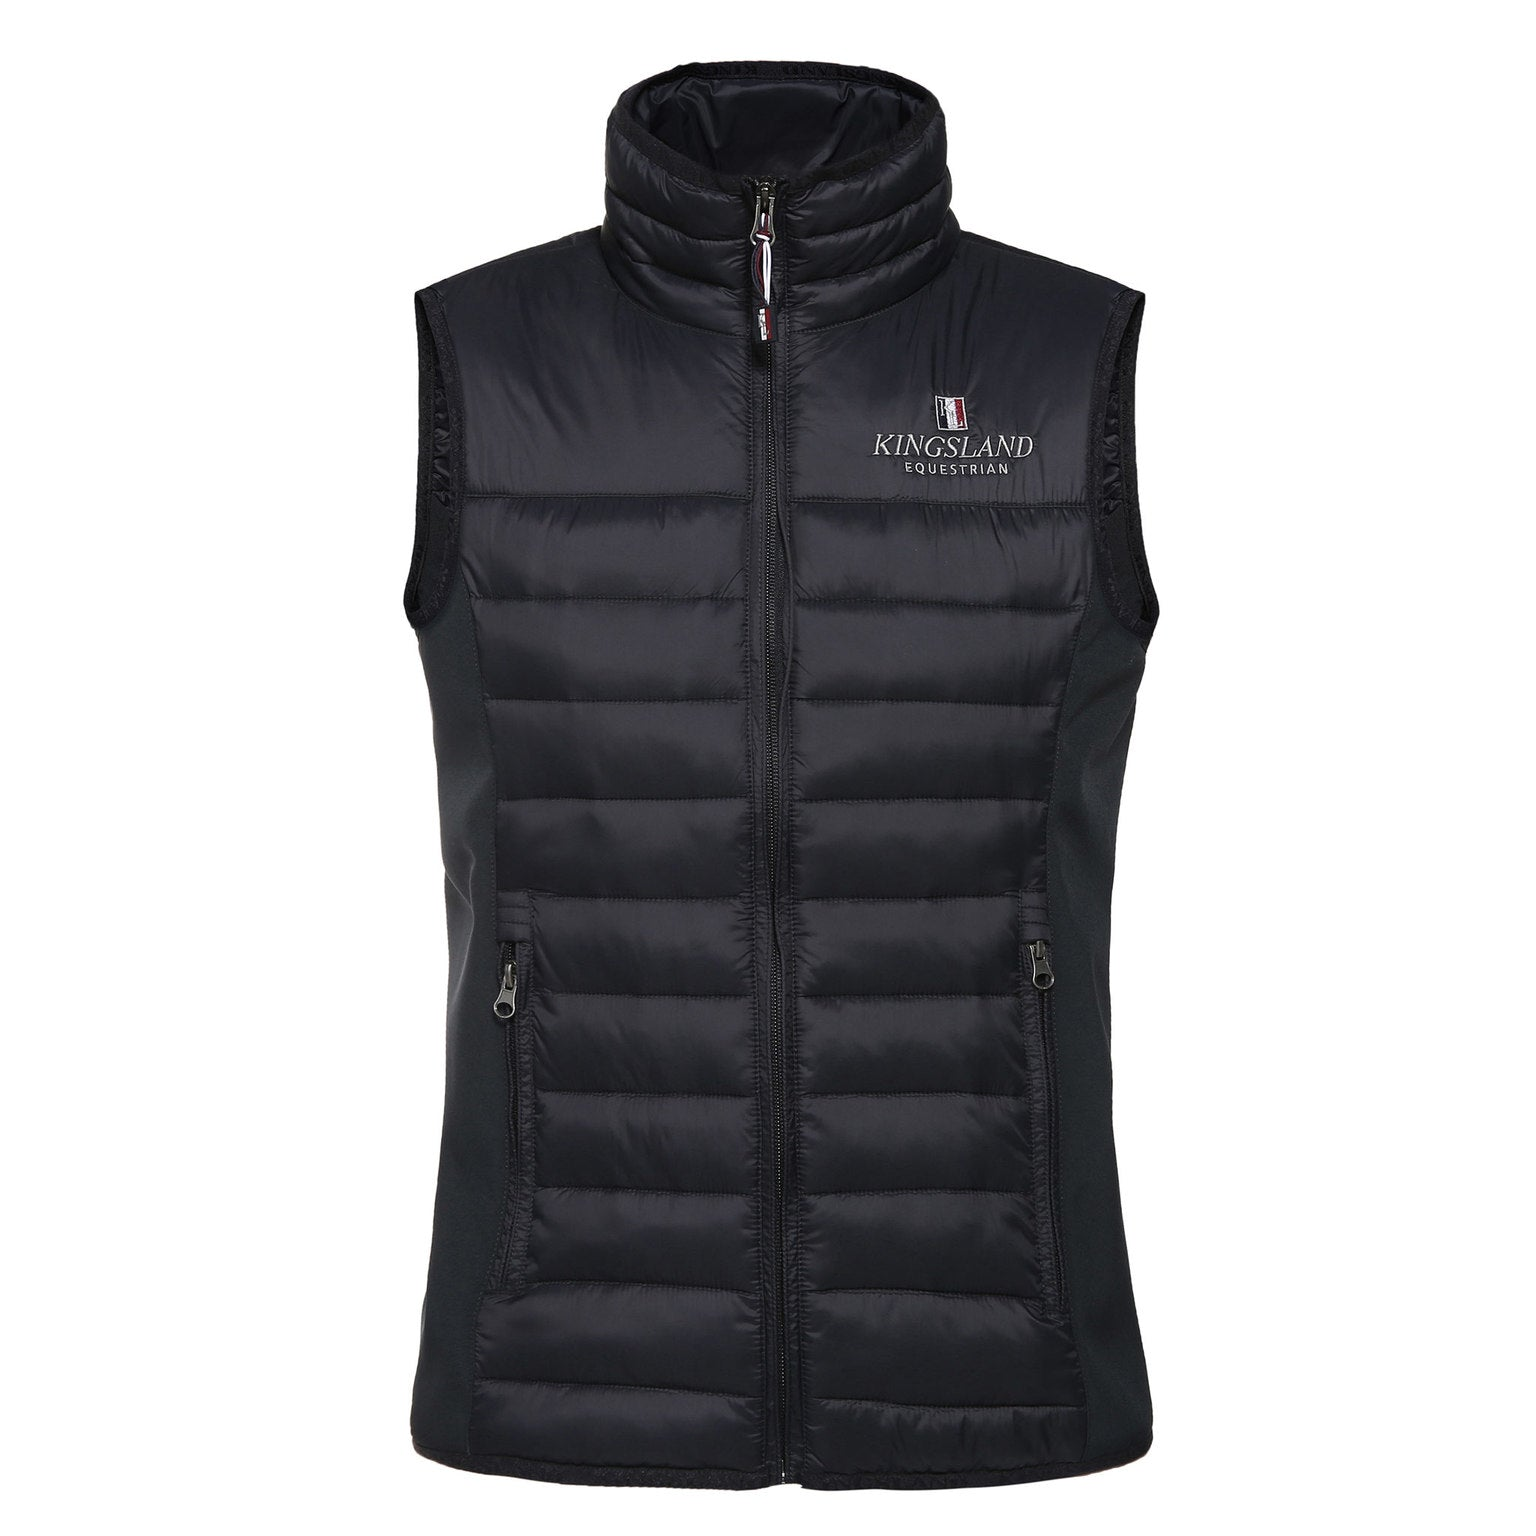 Classic Unisex Insulated Body Warmer